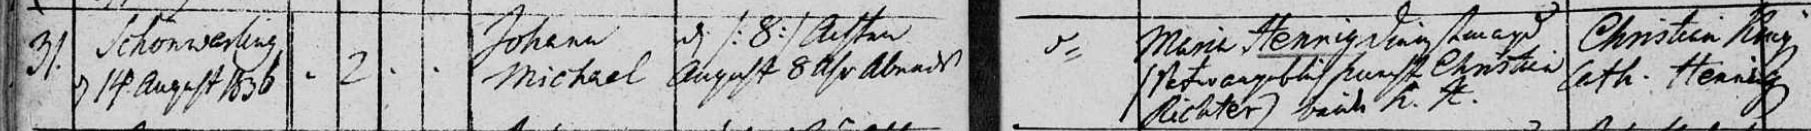 Johann Michael Hennig 1836 birth record